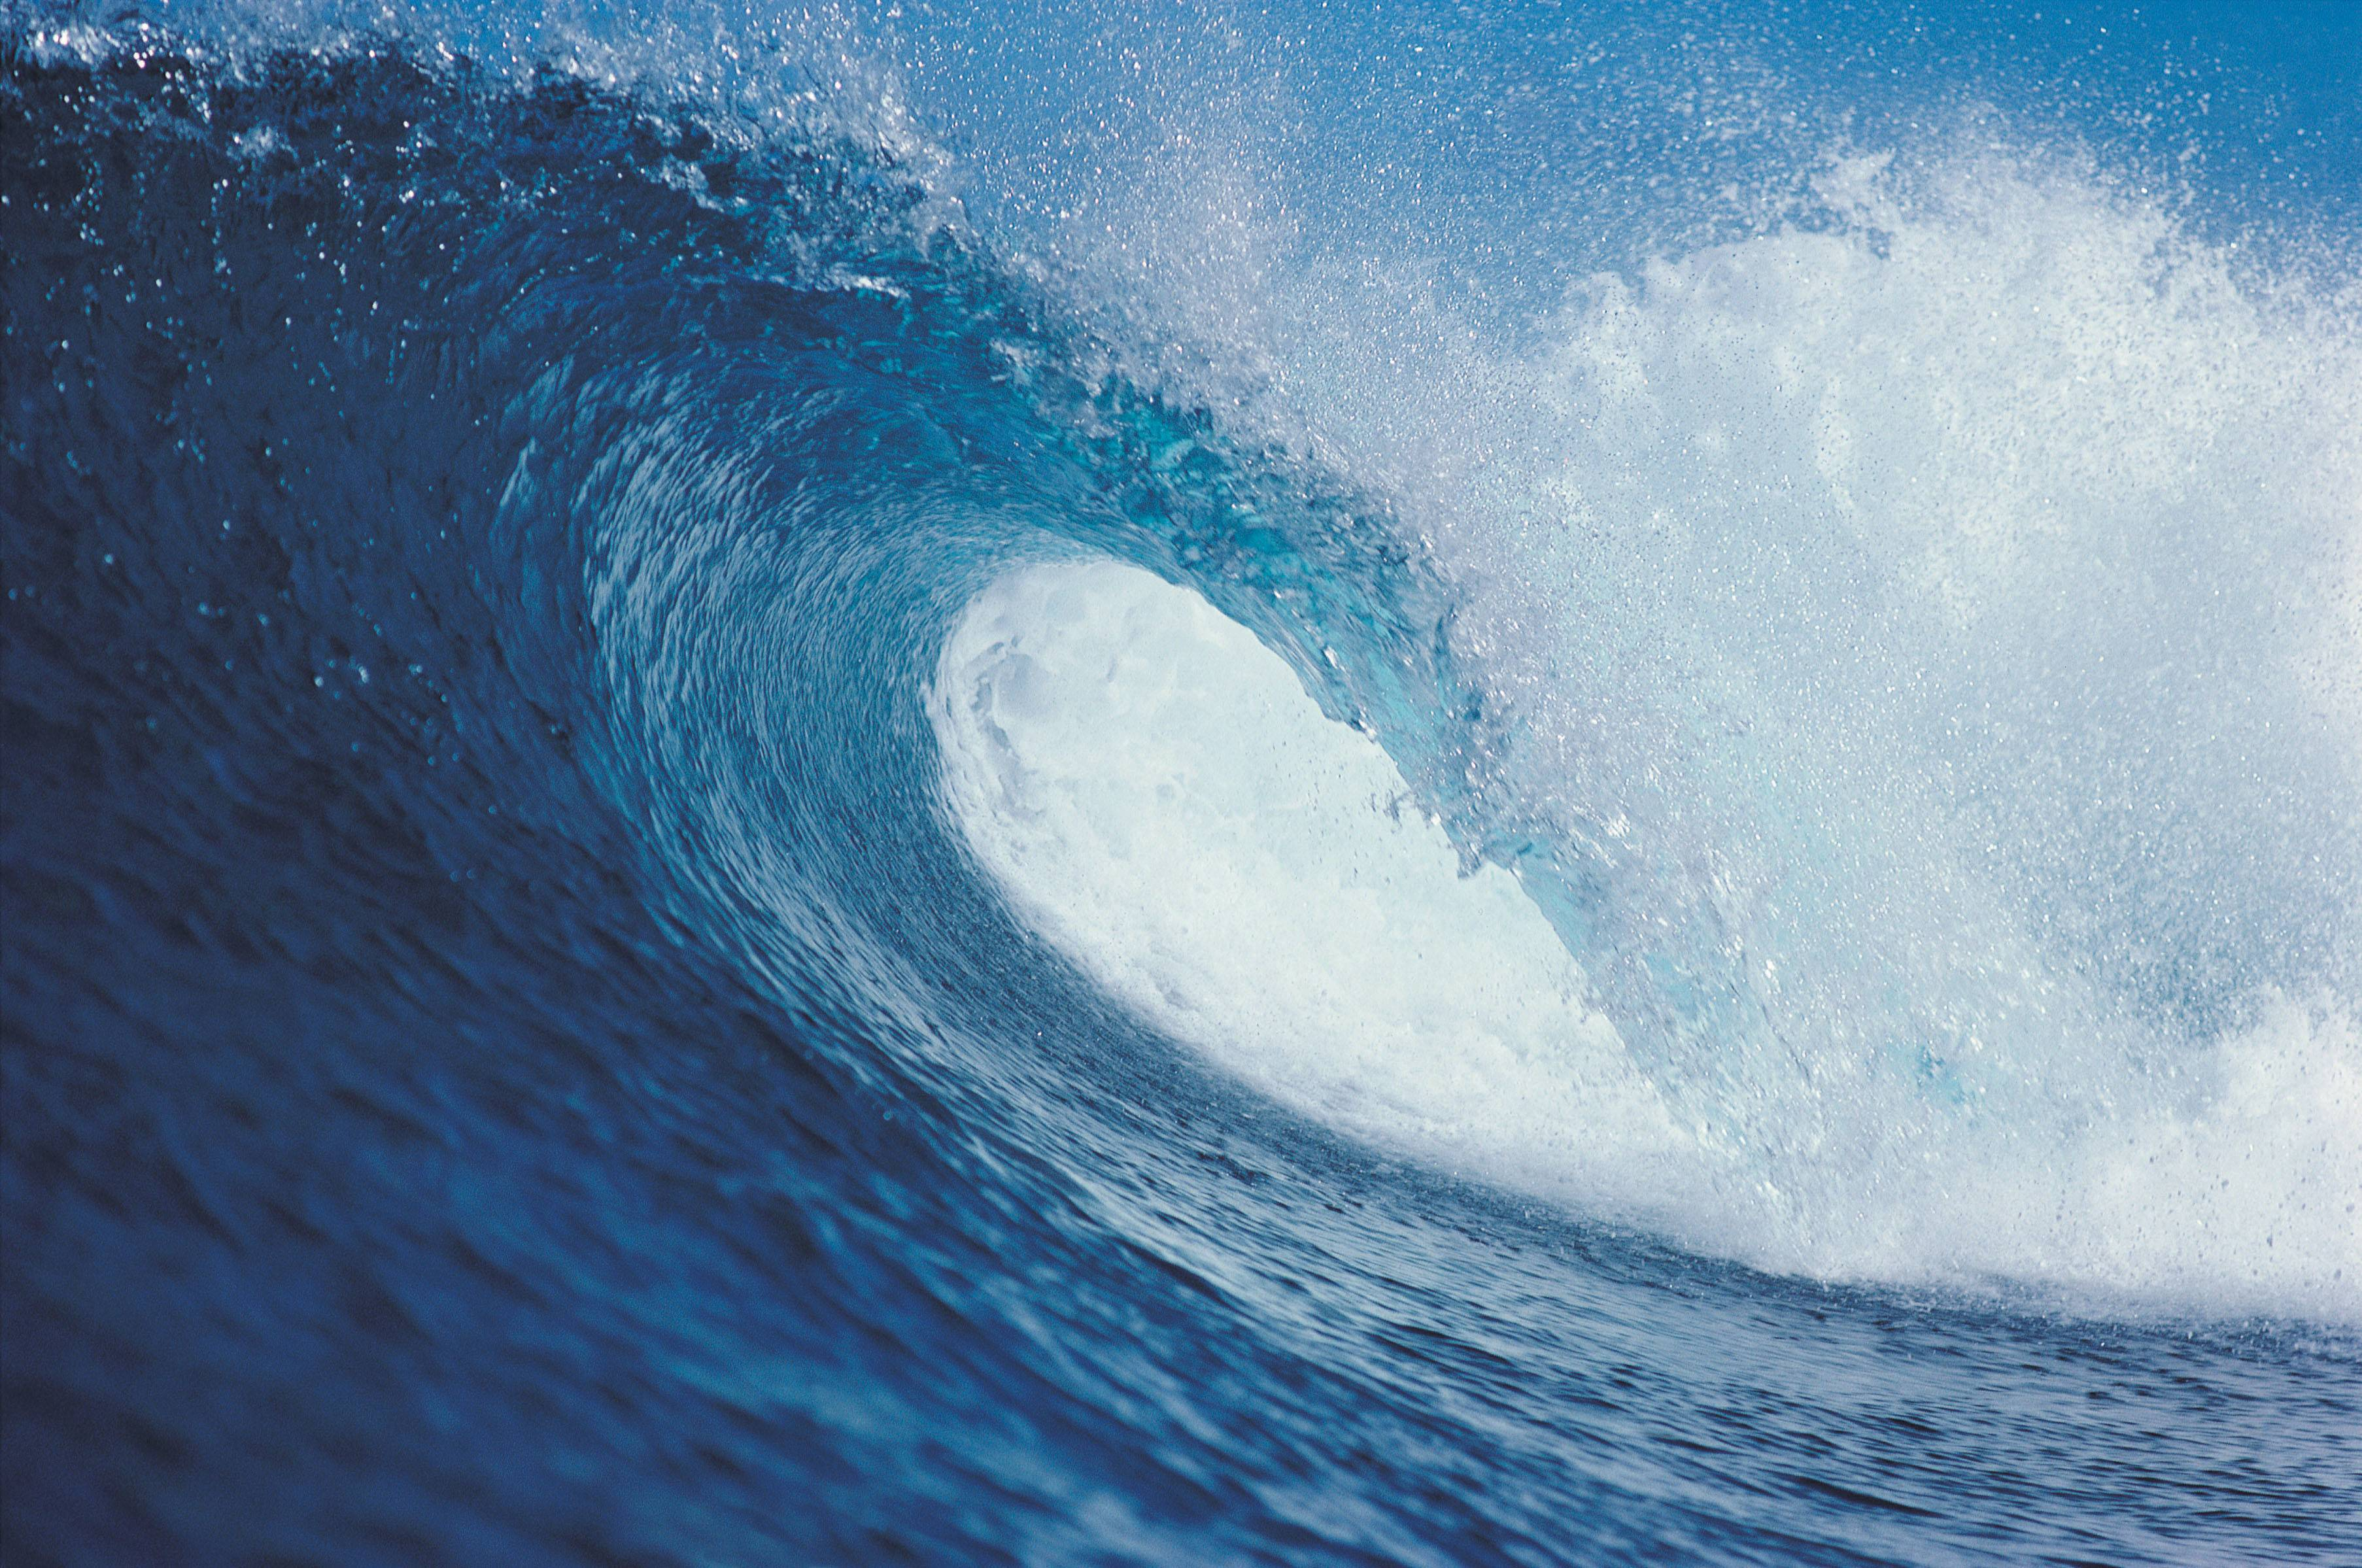 Wave Wallpaper High Resolution Waves HD Wallpapers